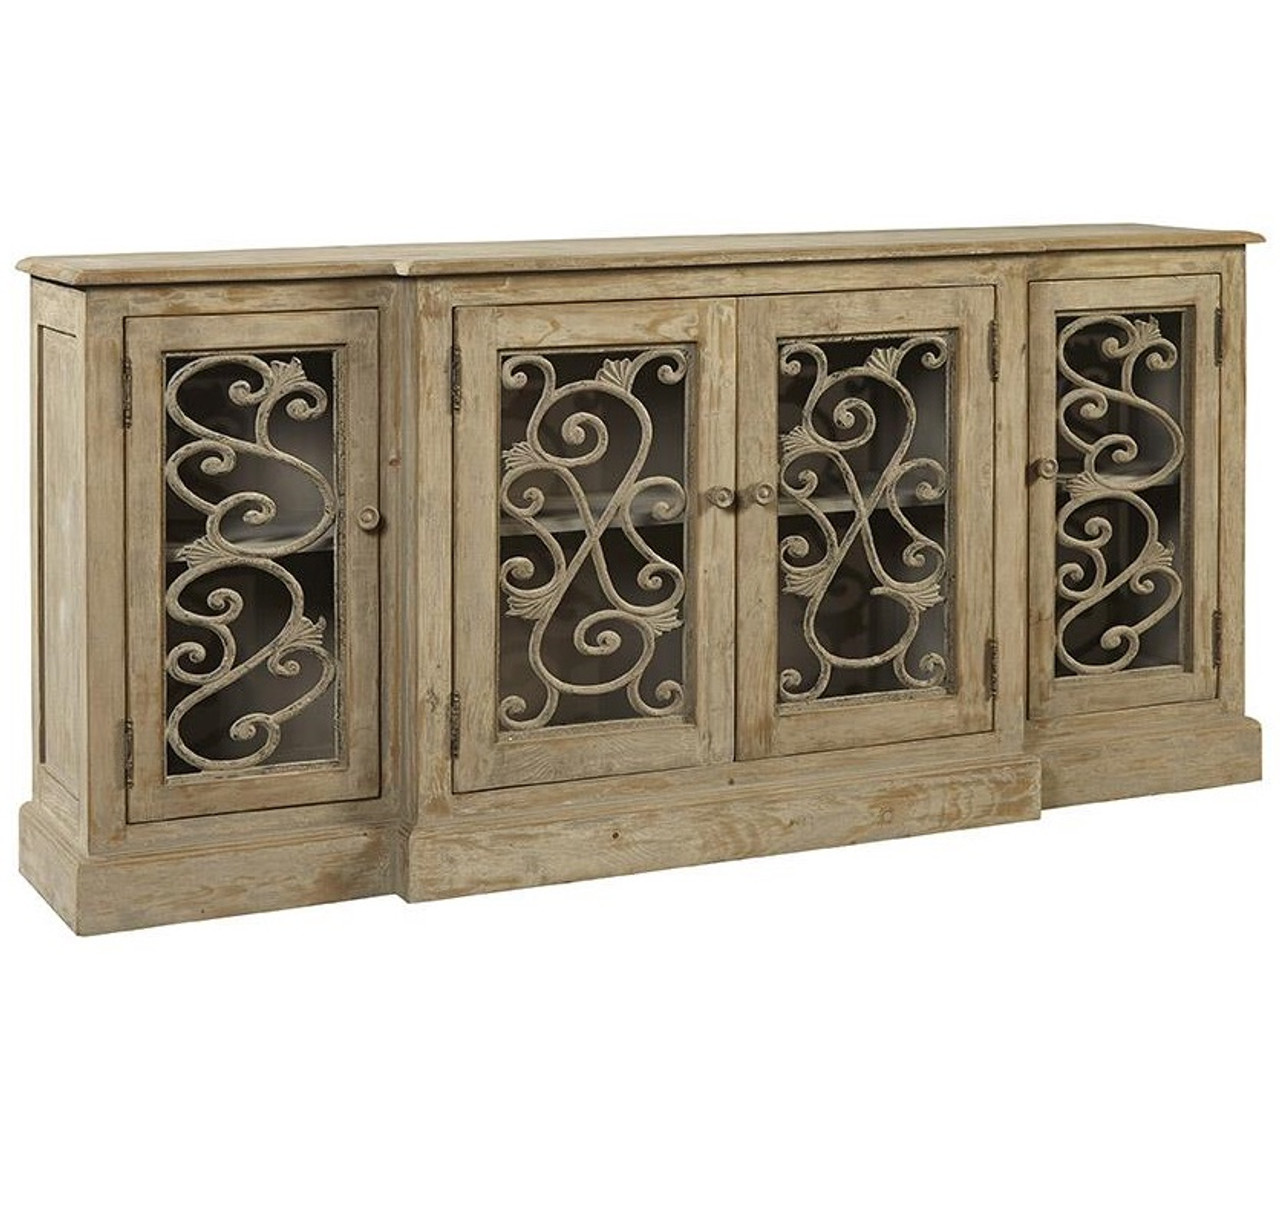 Chateau Chinon Rustic Grey Vintage Sideboard Buffet